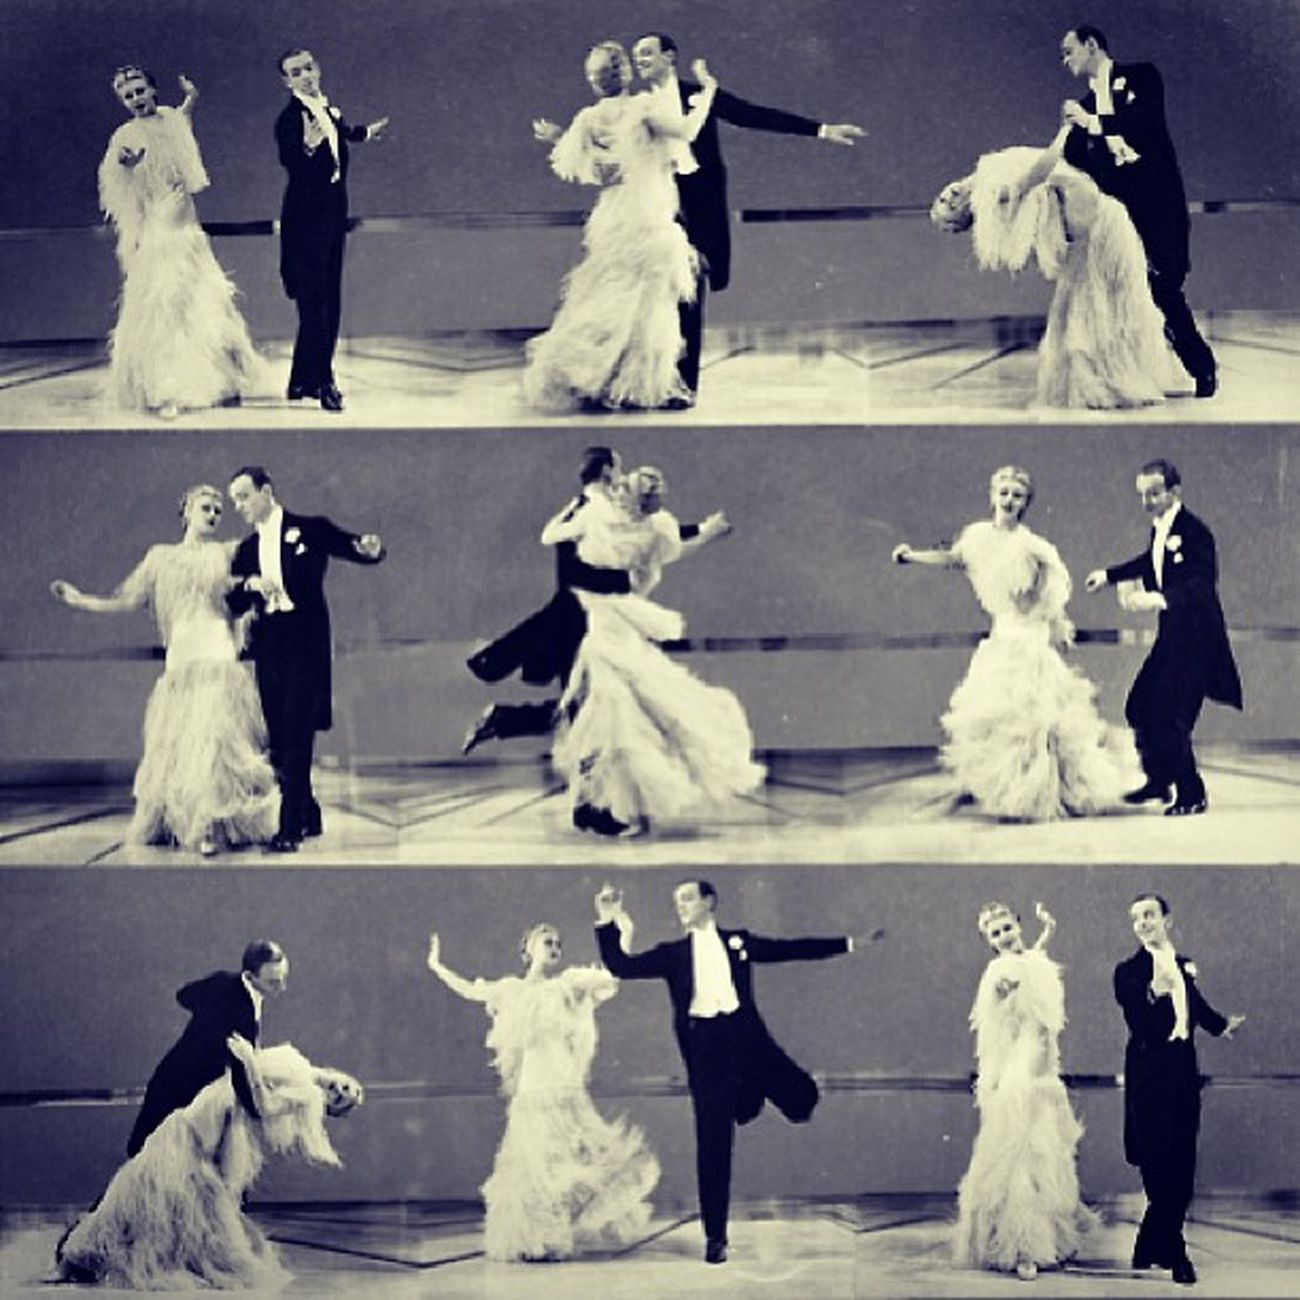 On the agenda for tonight ?❄Heaven Tophat Astaire Cheektocheek